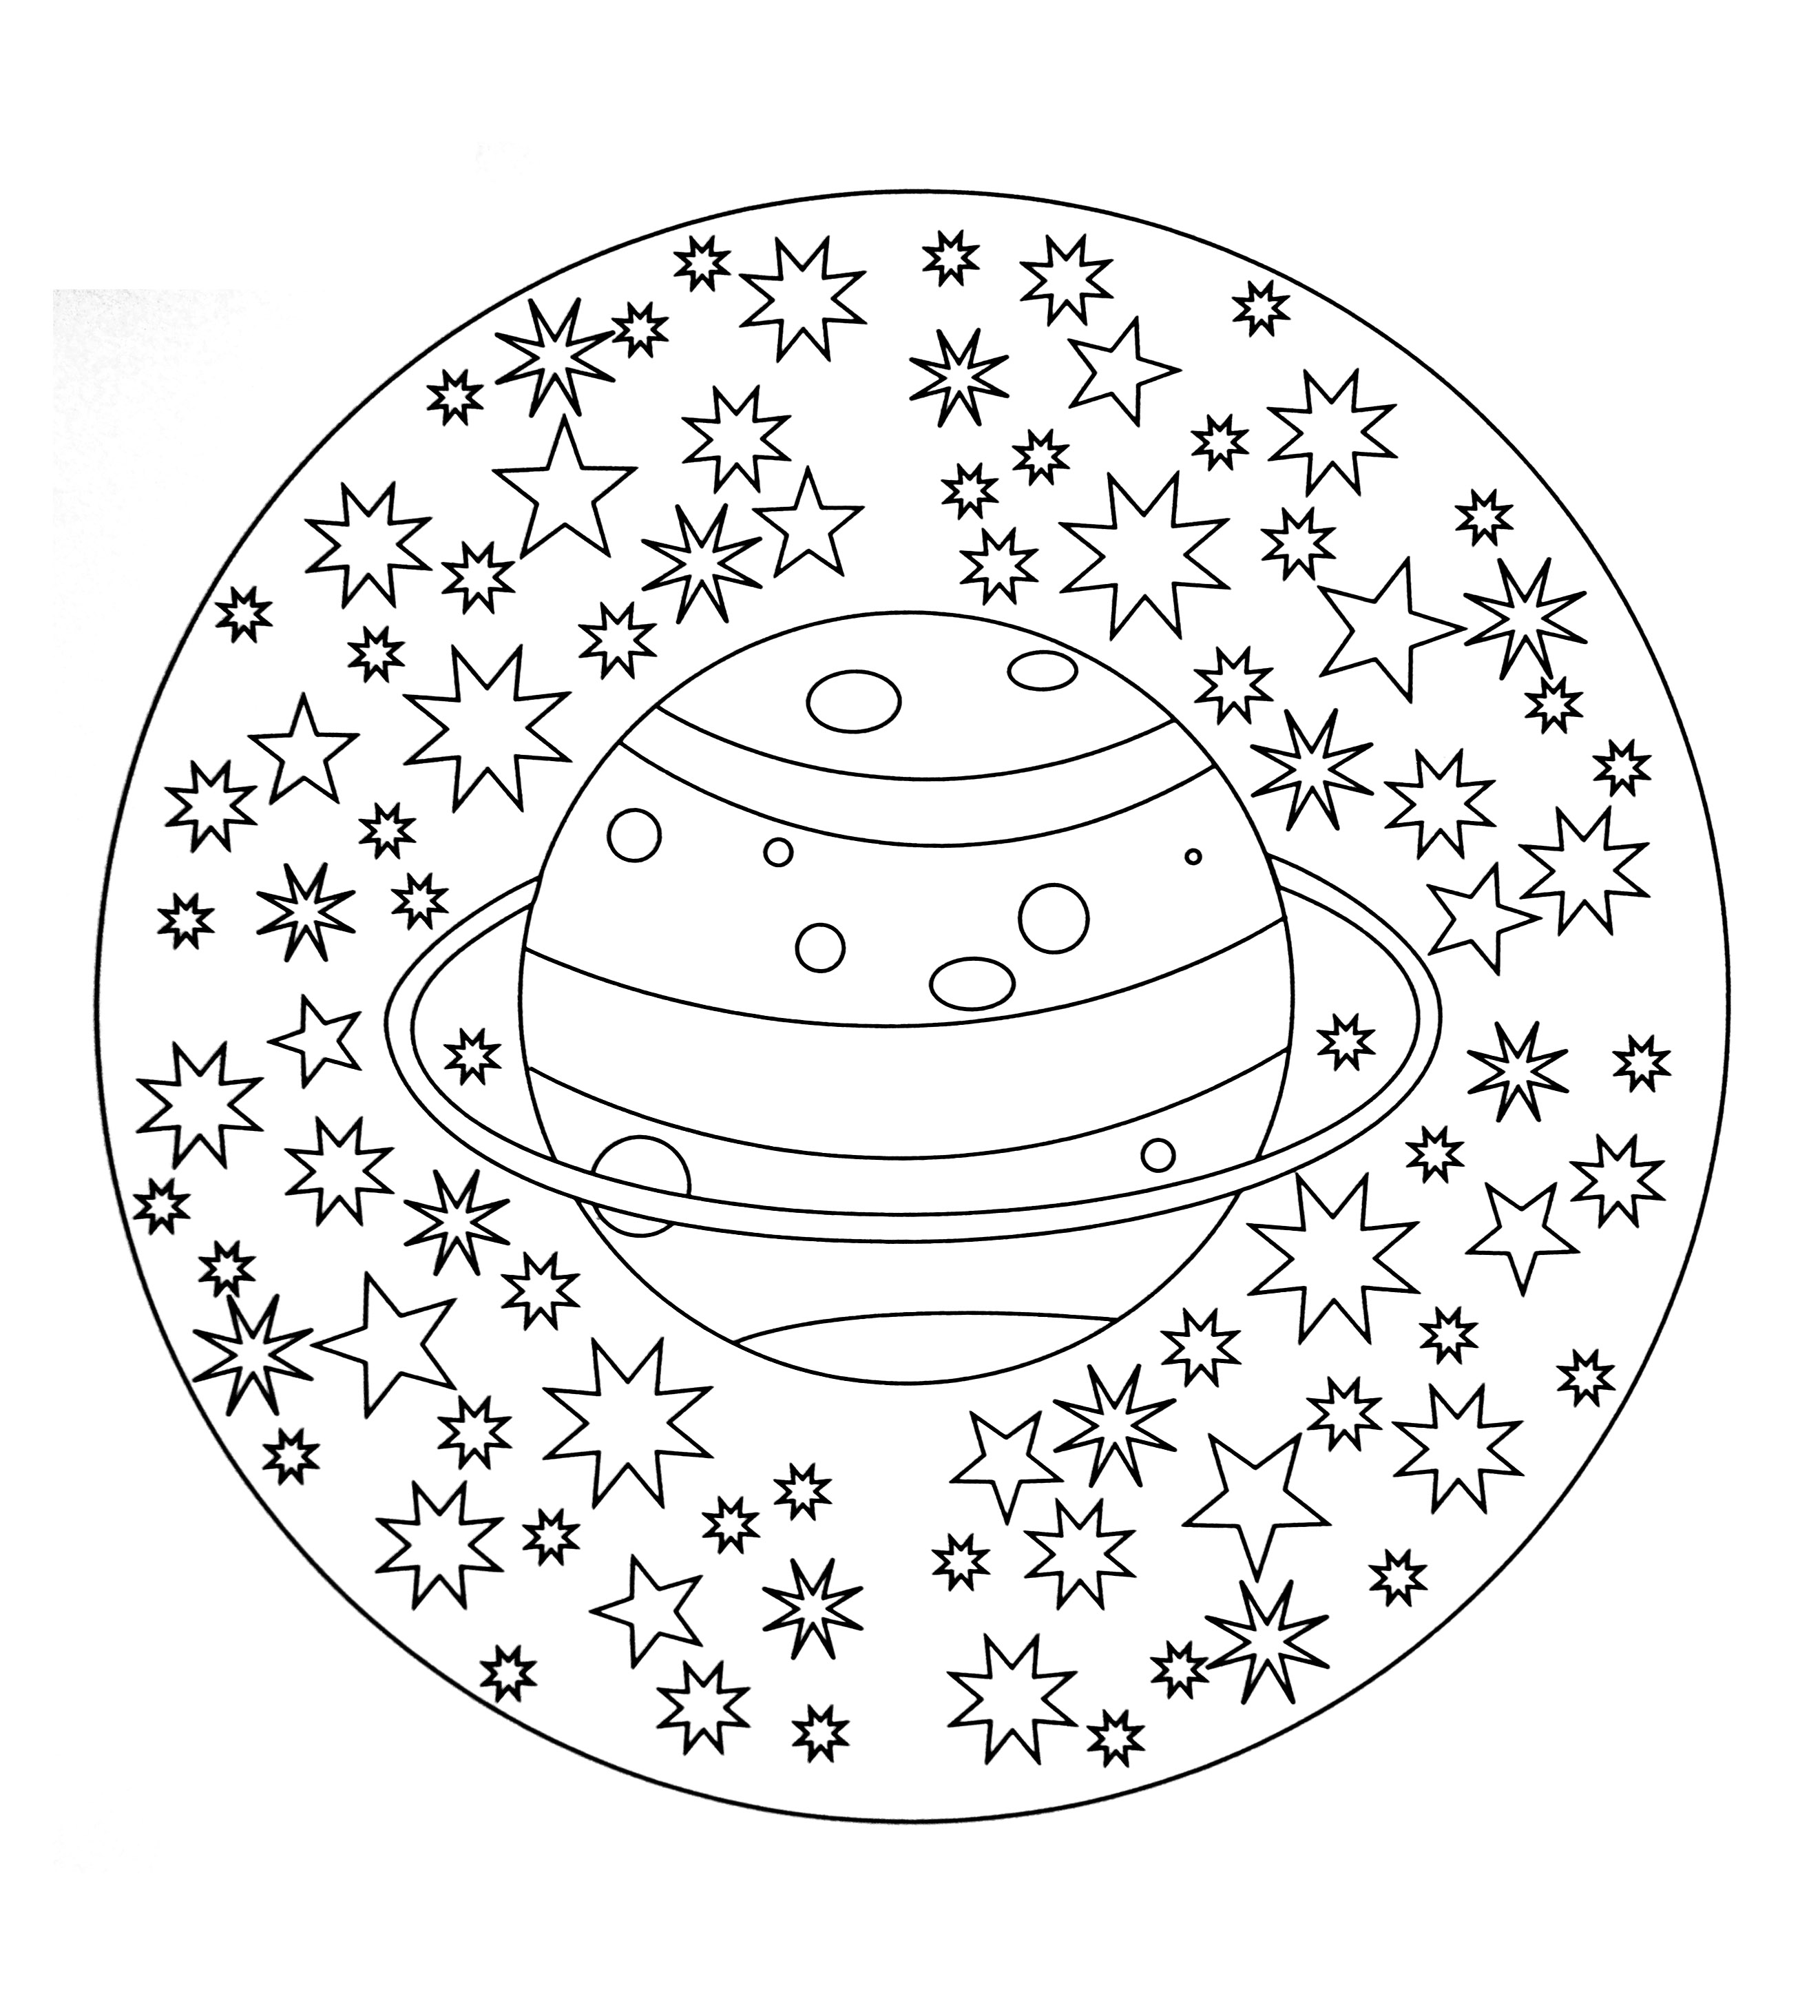 Easy Stress Free Mandala Coloring Pages. Easy. Best Free Coloring Pages